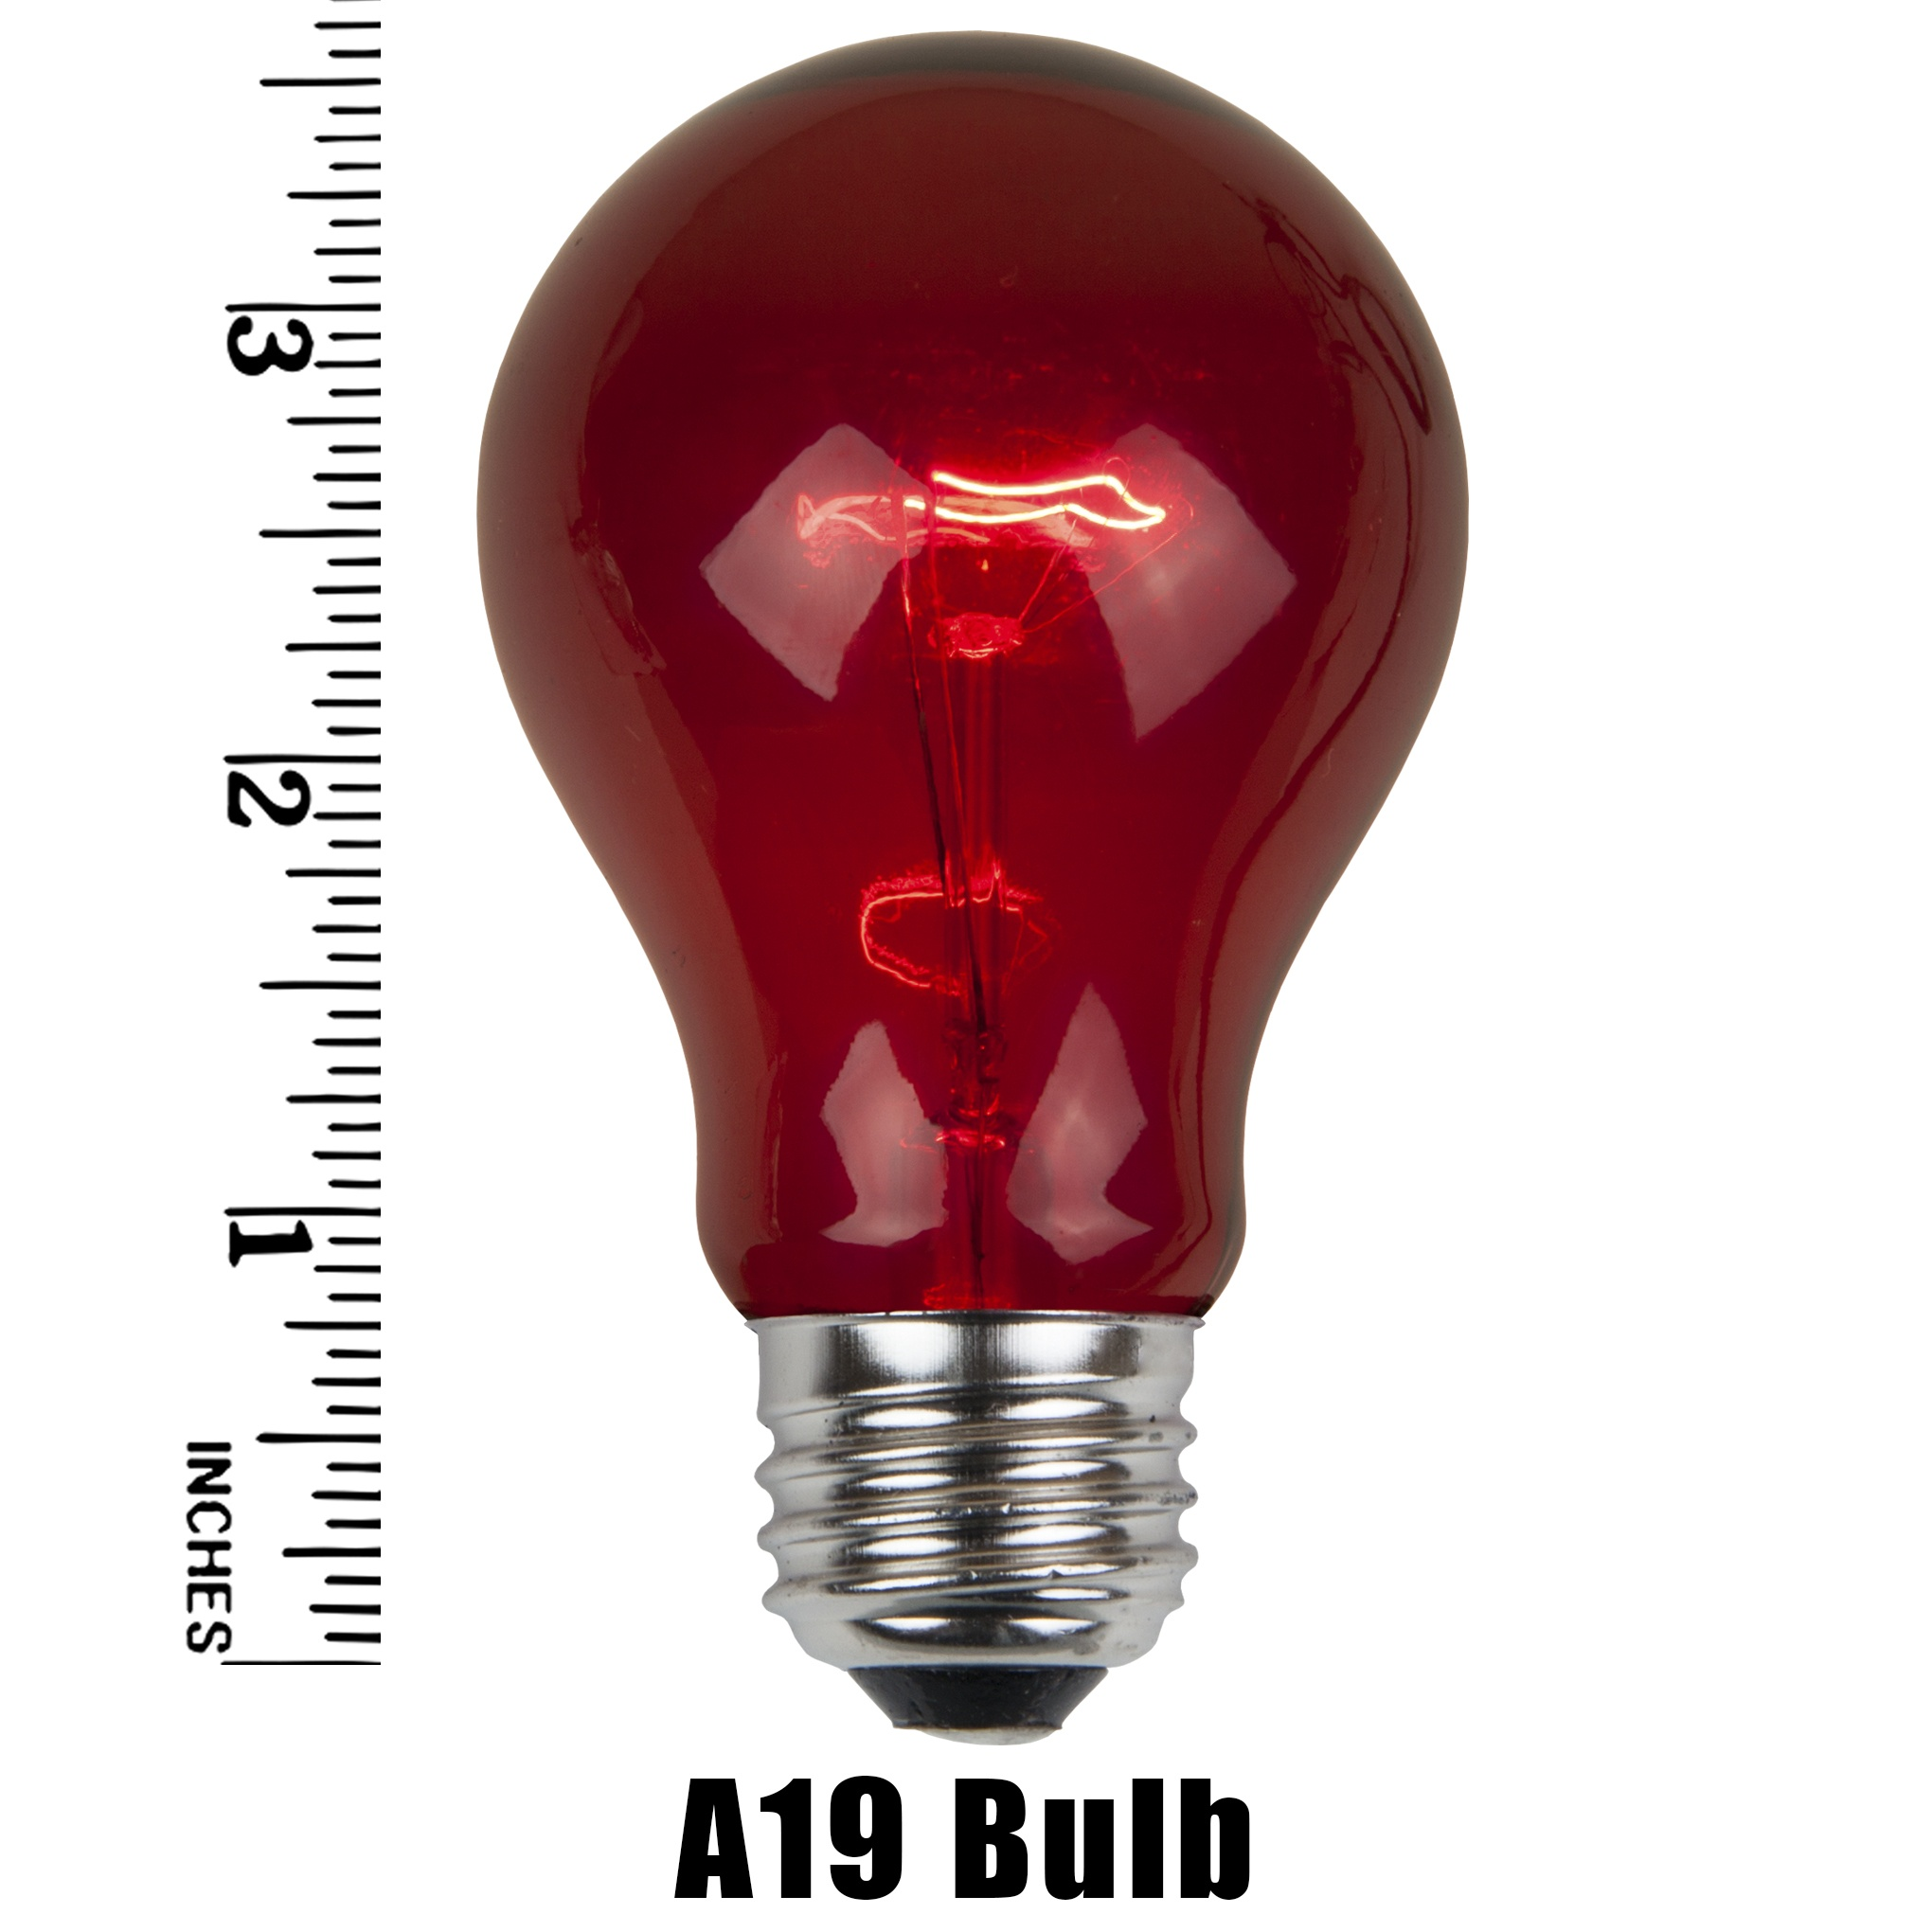 A19 Red Transparent Incandescent Bulb Measurement